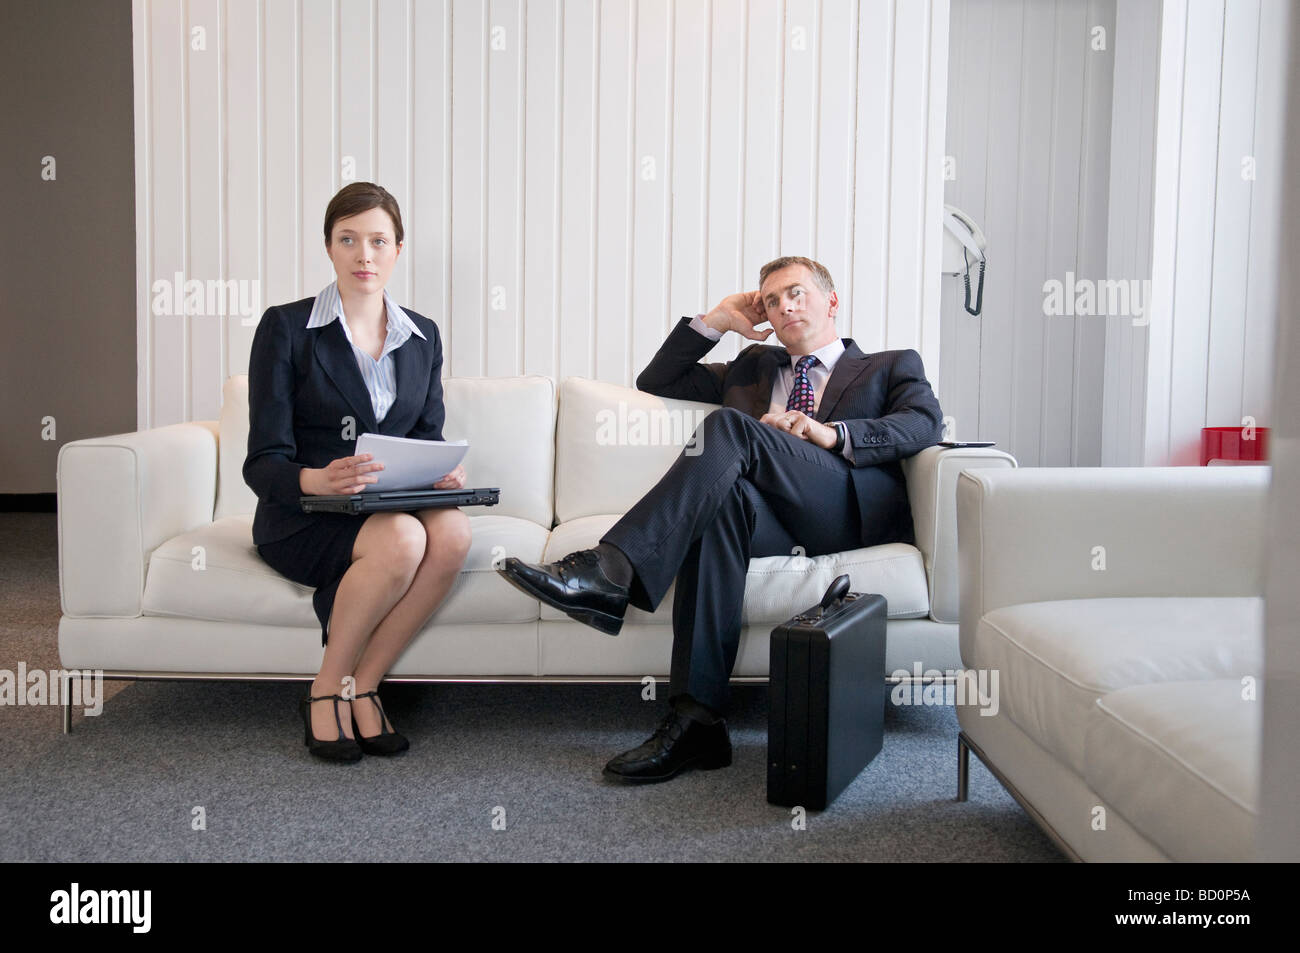 A business couple waiting in reception - Stock Image